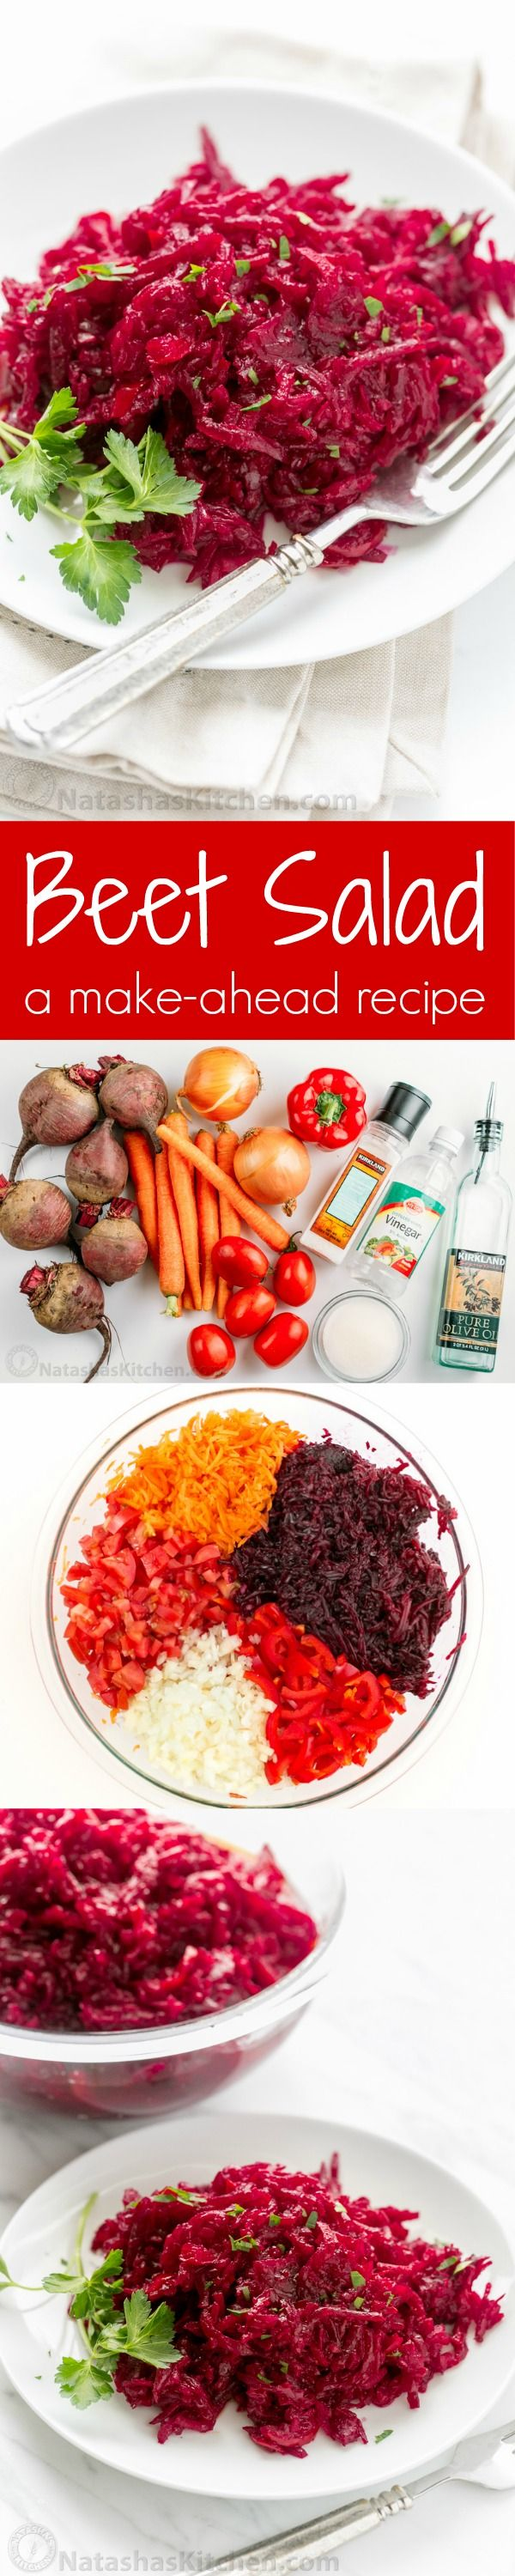 This beet salad is loaded with 3 pounds of beets (super healthy) and the marinade gives it wonderful flavor. Perfect for parties because it's a make-ahead salad that stores really well in the fridge and can even be canned.